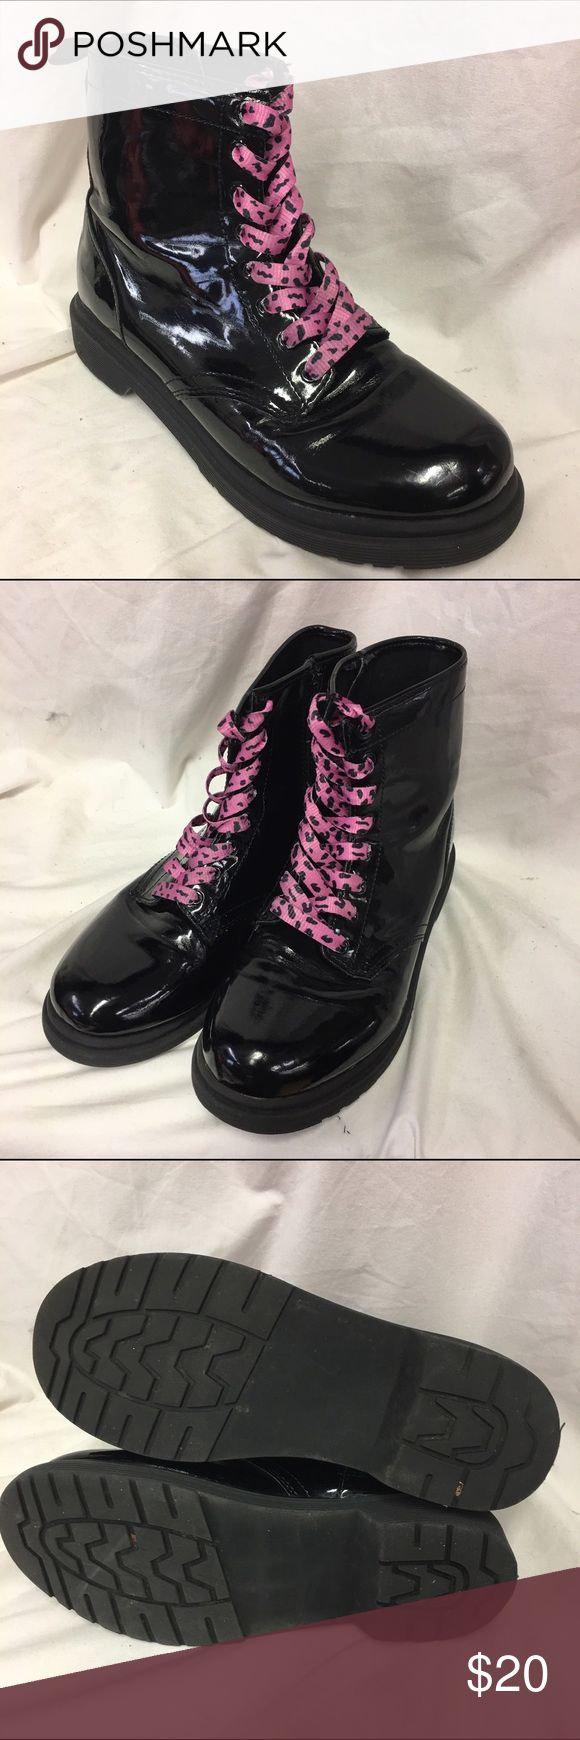 Cherokee Girls 5 Black Lace Up Boots Doc Look Cherokee Girls 5 Black Lace Up Boots Doc Look Alikes 5  Very good used condition.  Pink leopardy print laces.  Black patent finish.  Thick soles.  Heavy to ship.  Look like Doc Martens.  #docs #looklikedocs #pink #laceup #punkrock #boots #black #blackboots #punk Cherokee Shoes Boots